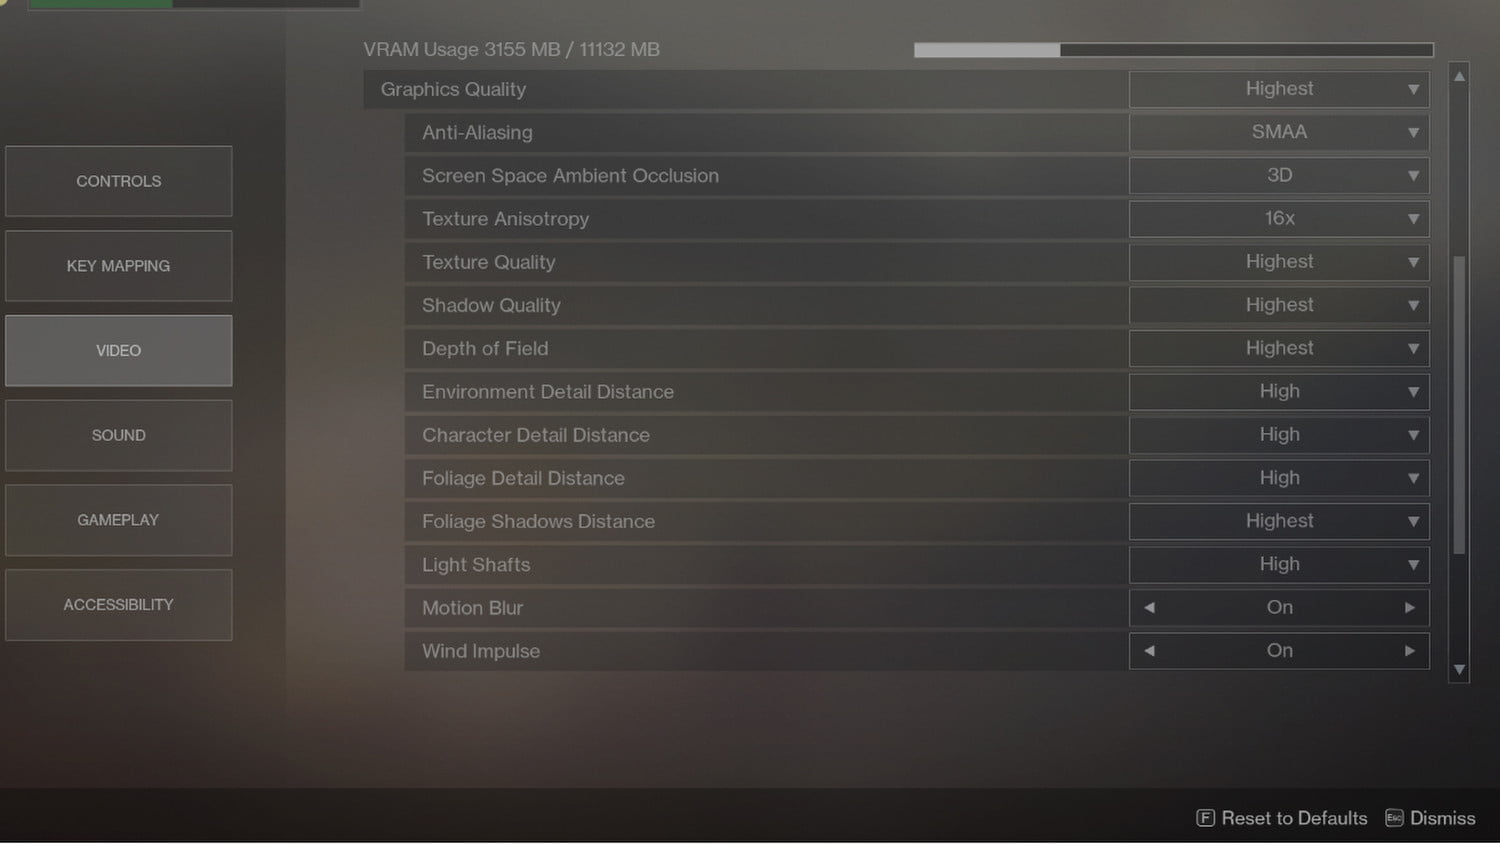 Destiny 2 Pc Performance Guide How To Make The Game Run Better Circuit Wizard Standard Edition Animation Menu Window Of Video Settings